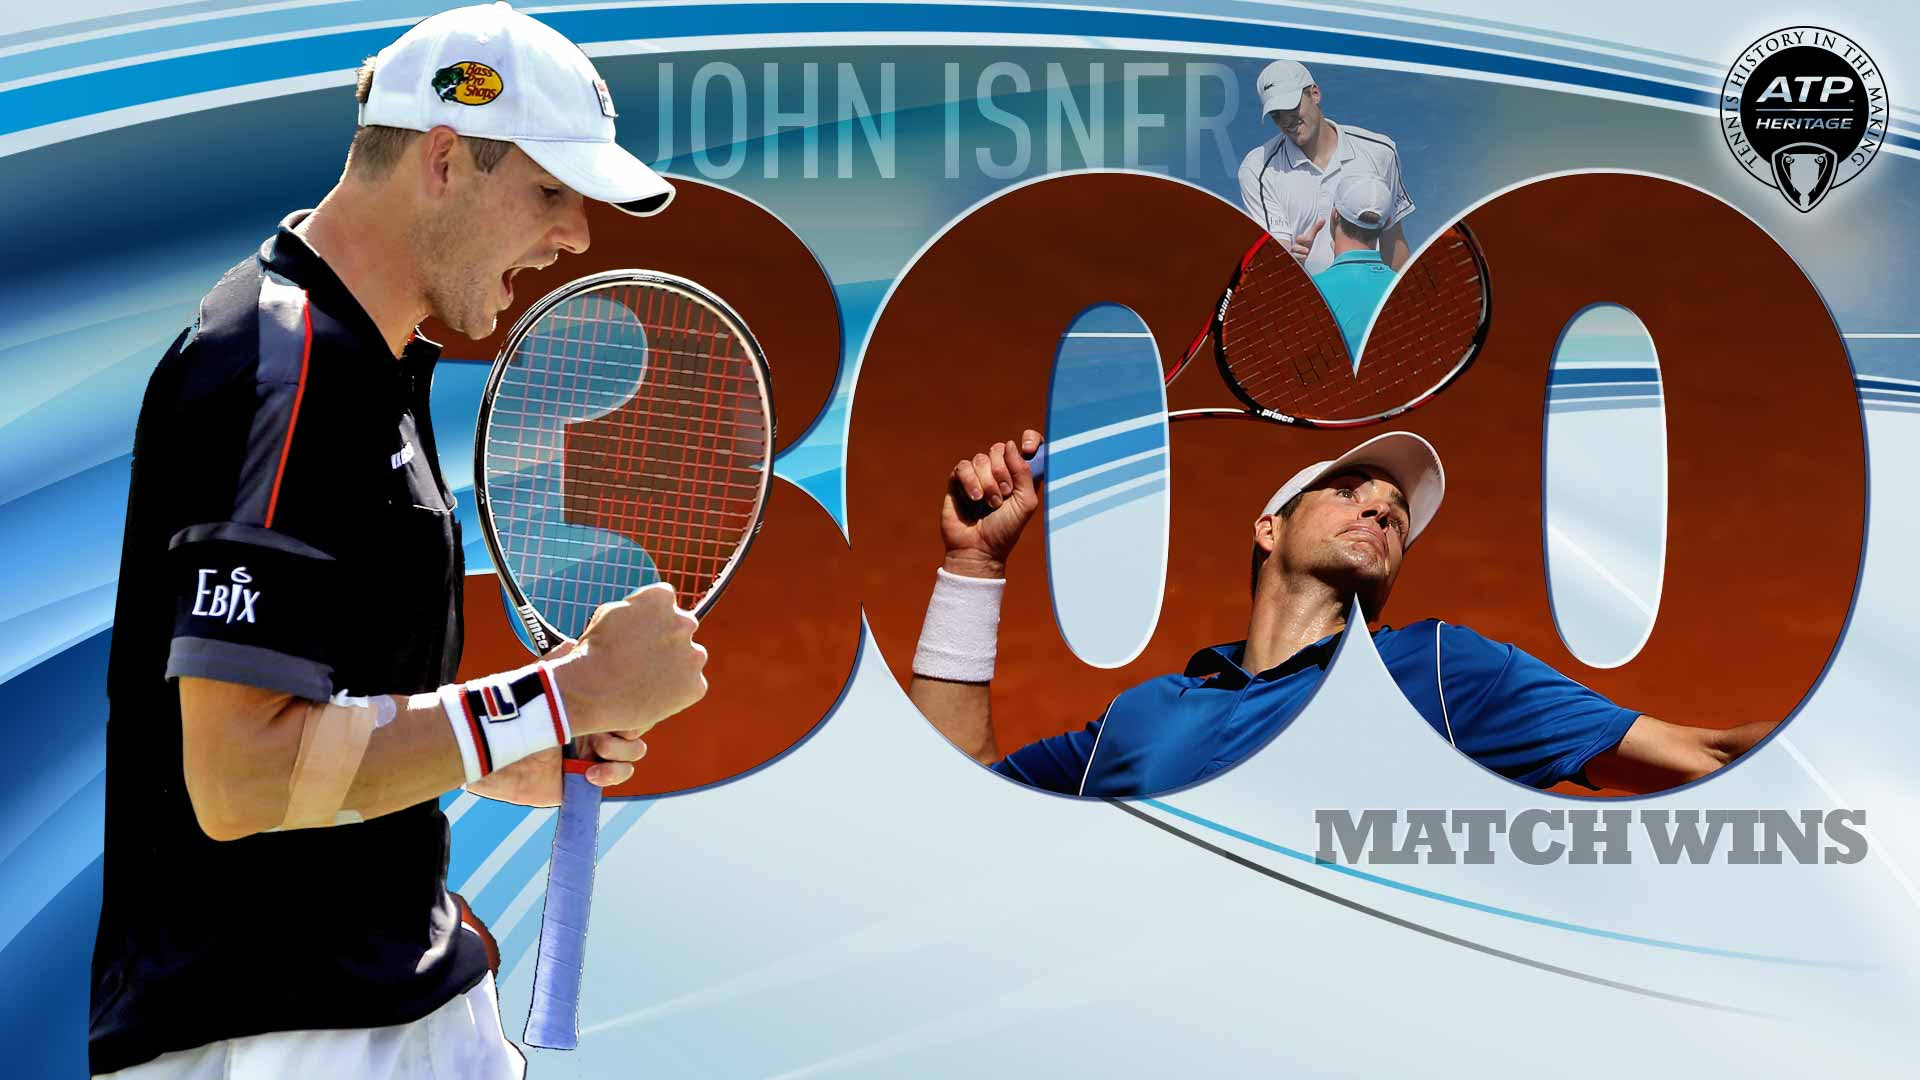 John Isner recorded his 300th win on Wednesday at Roland Garros.